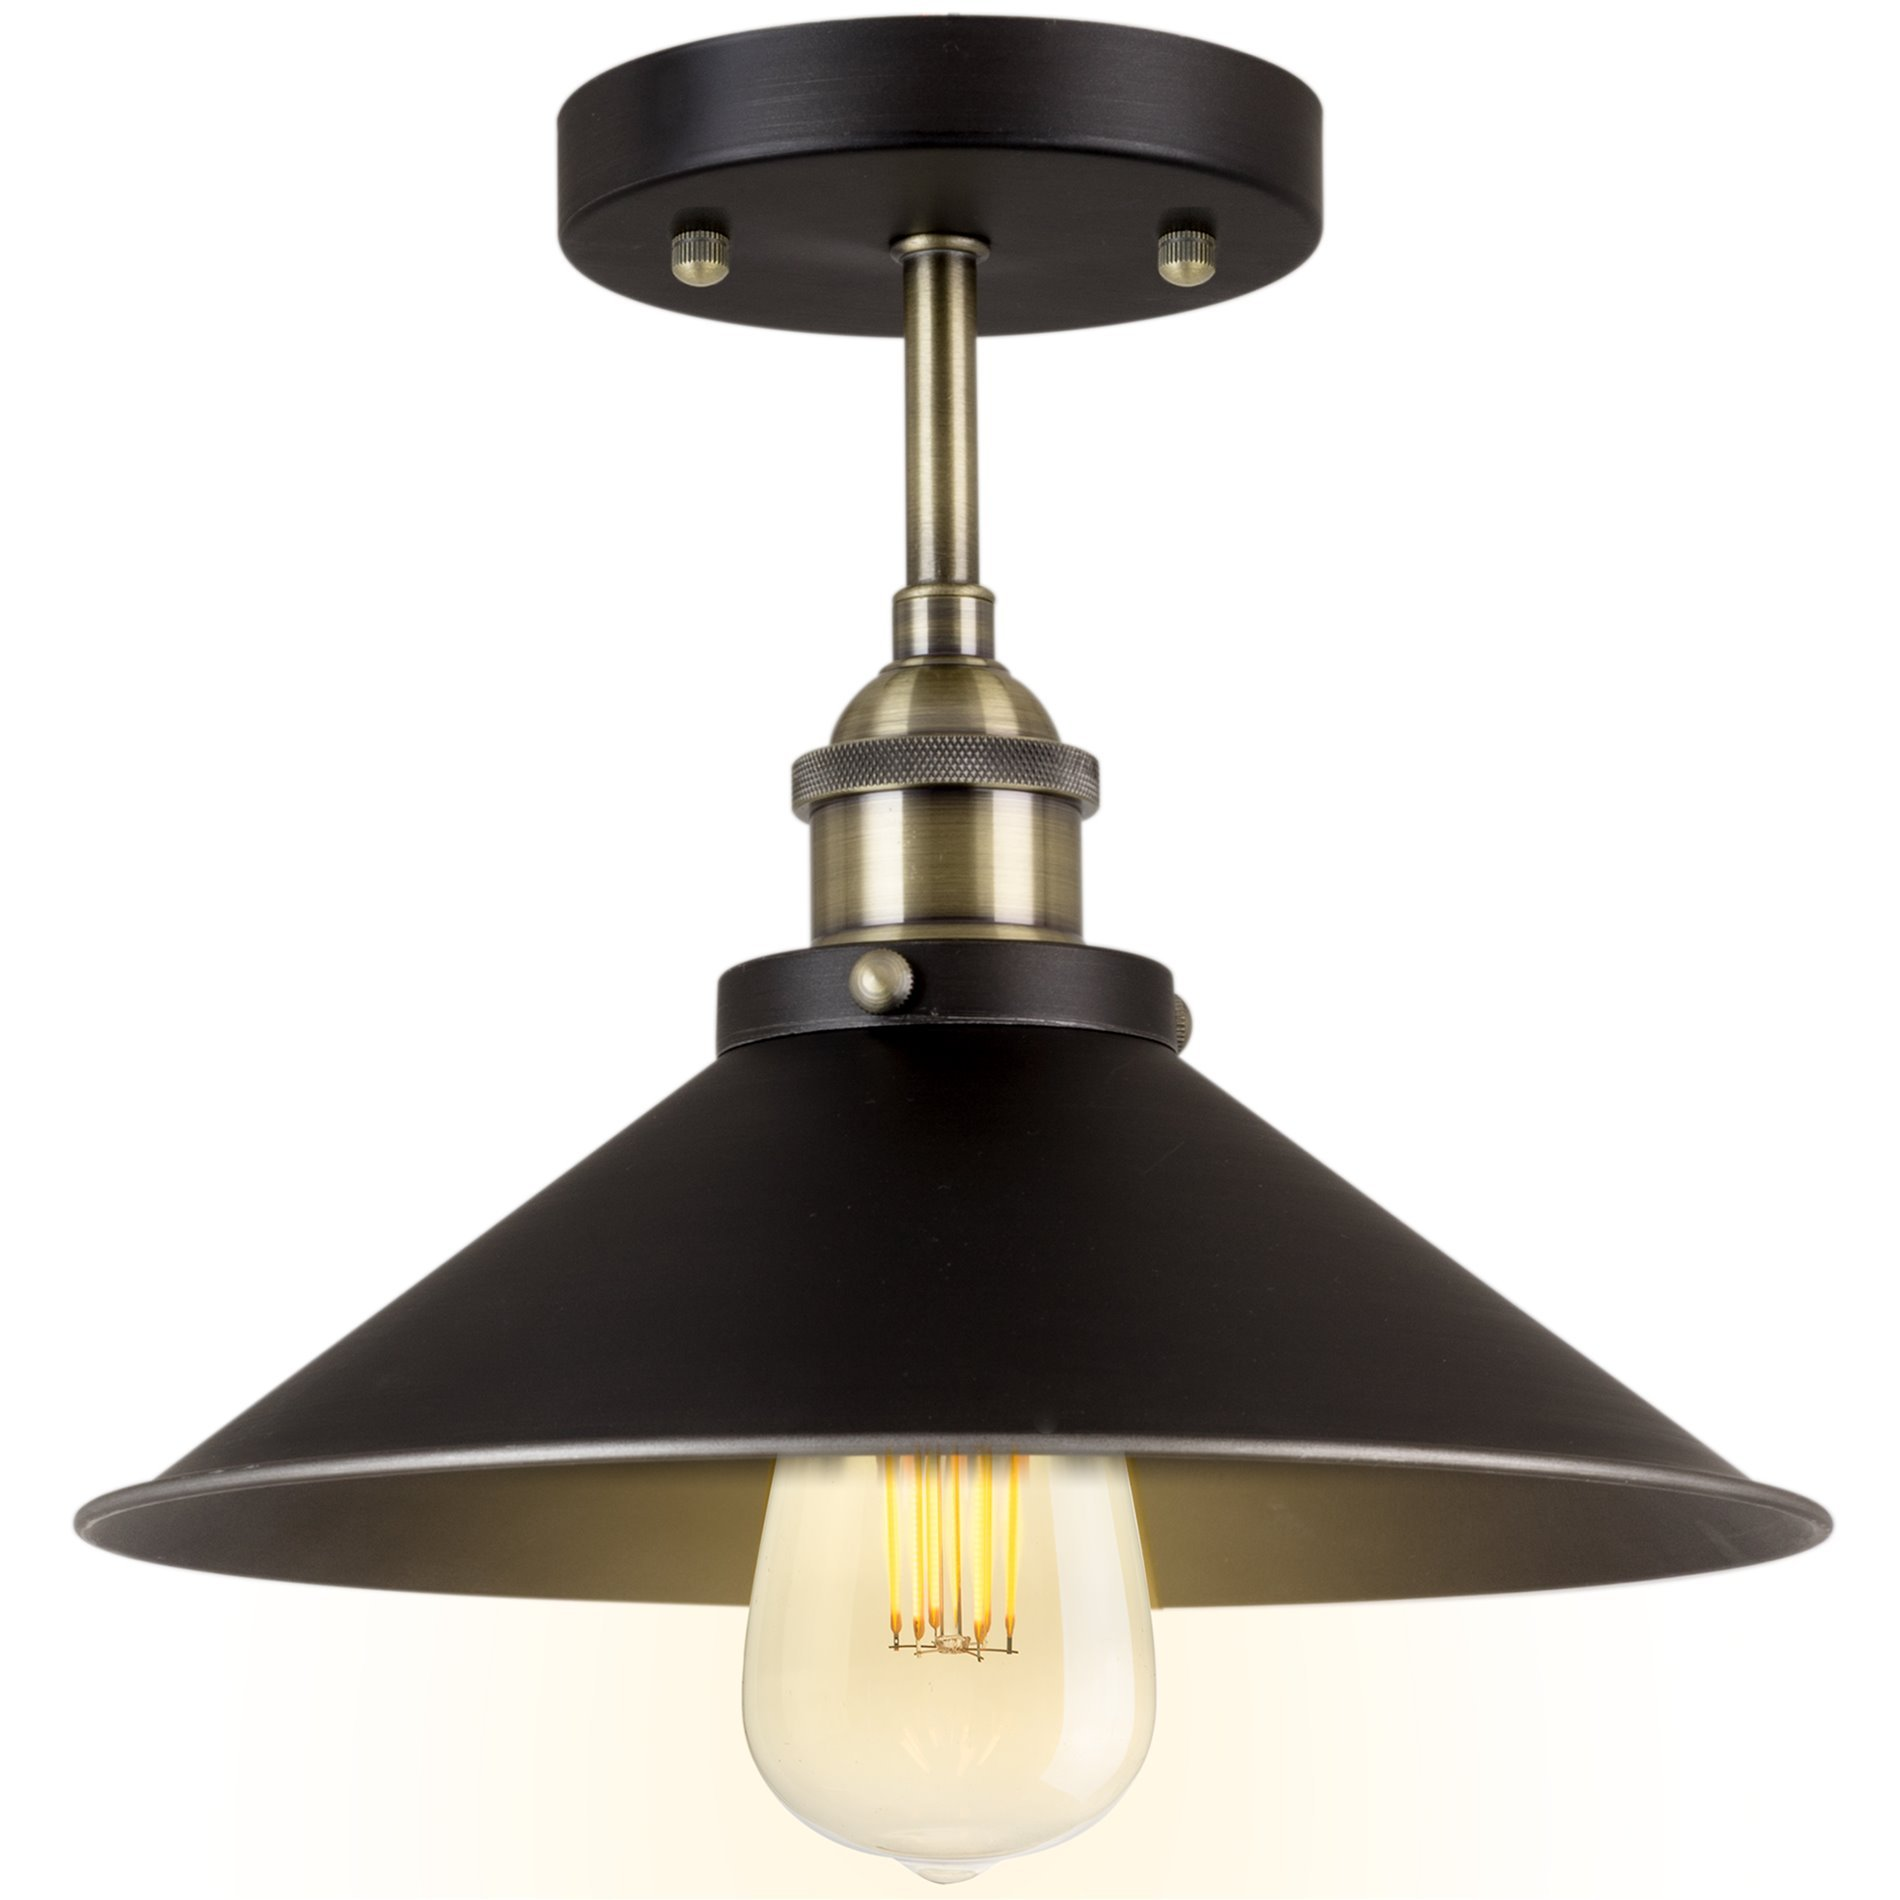 Kira Home Indie 10'' Industrial Semi Flush Mount Ceiling Light, Brushed Black Finish by Kira Home